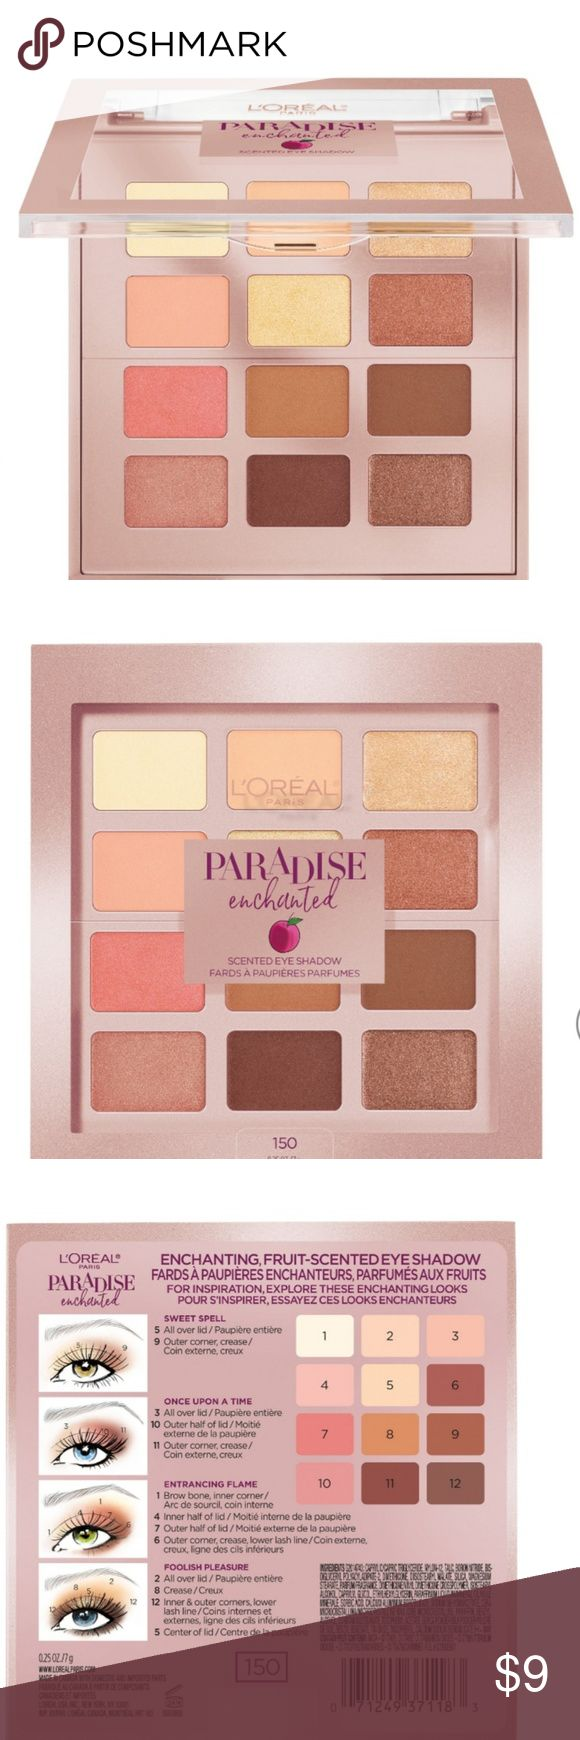 Paradise Enchanted scented eyeshadow palette 150